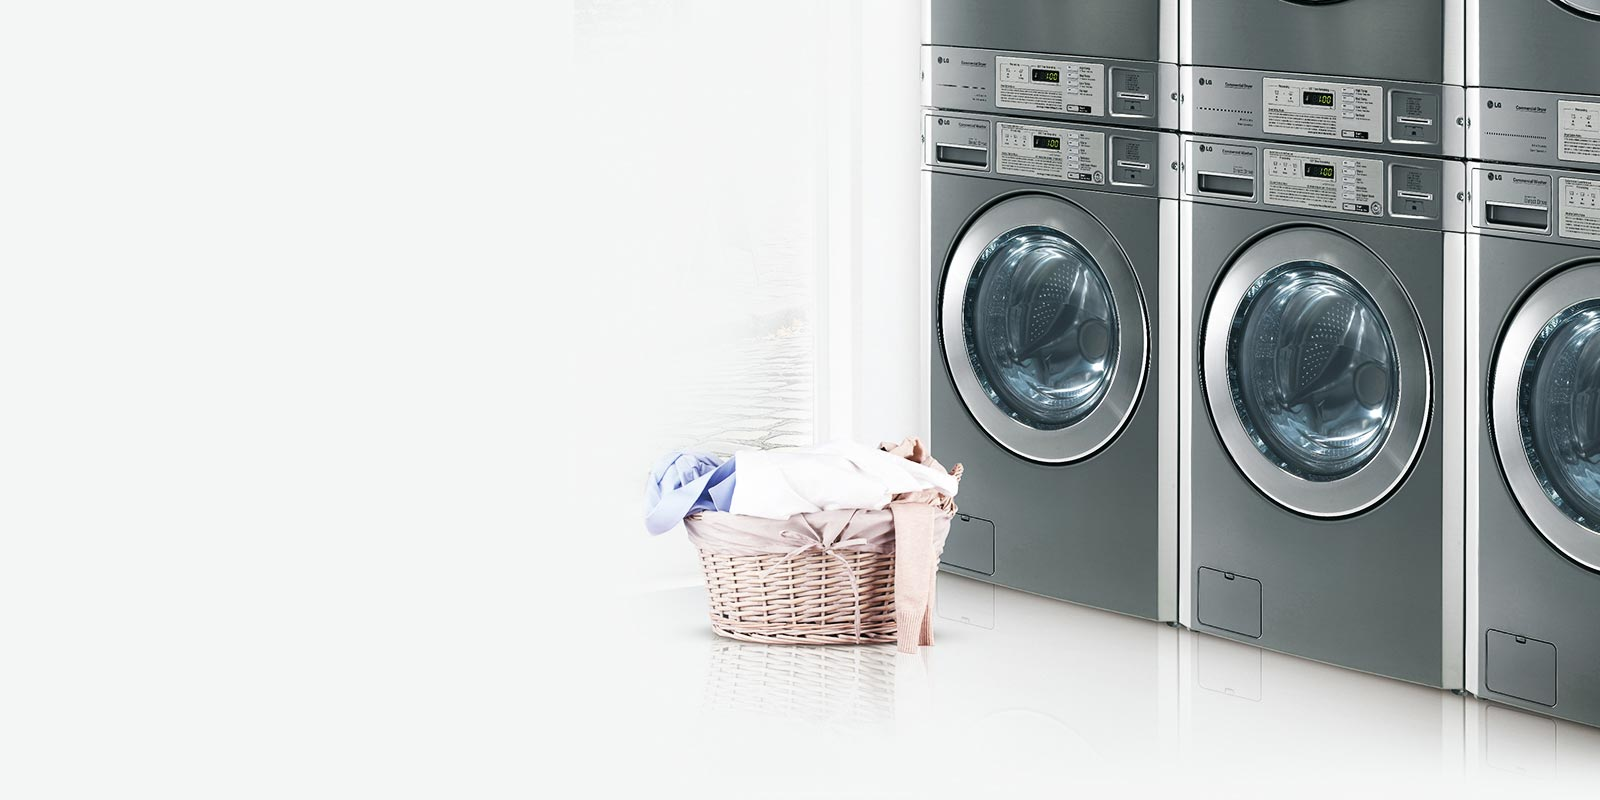 Washer Dryer Laundry Business Package From Kyzen Pinoy